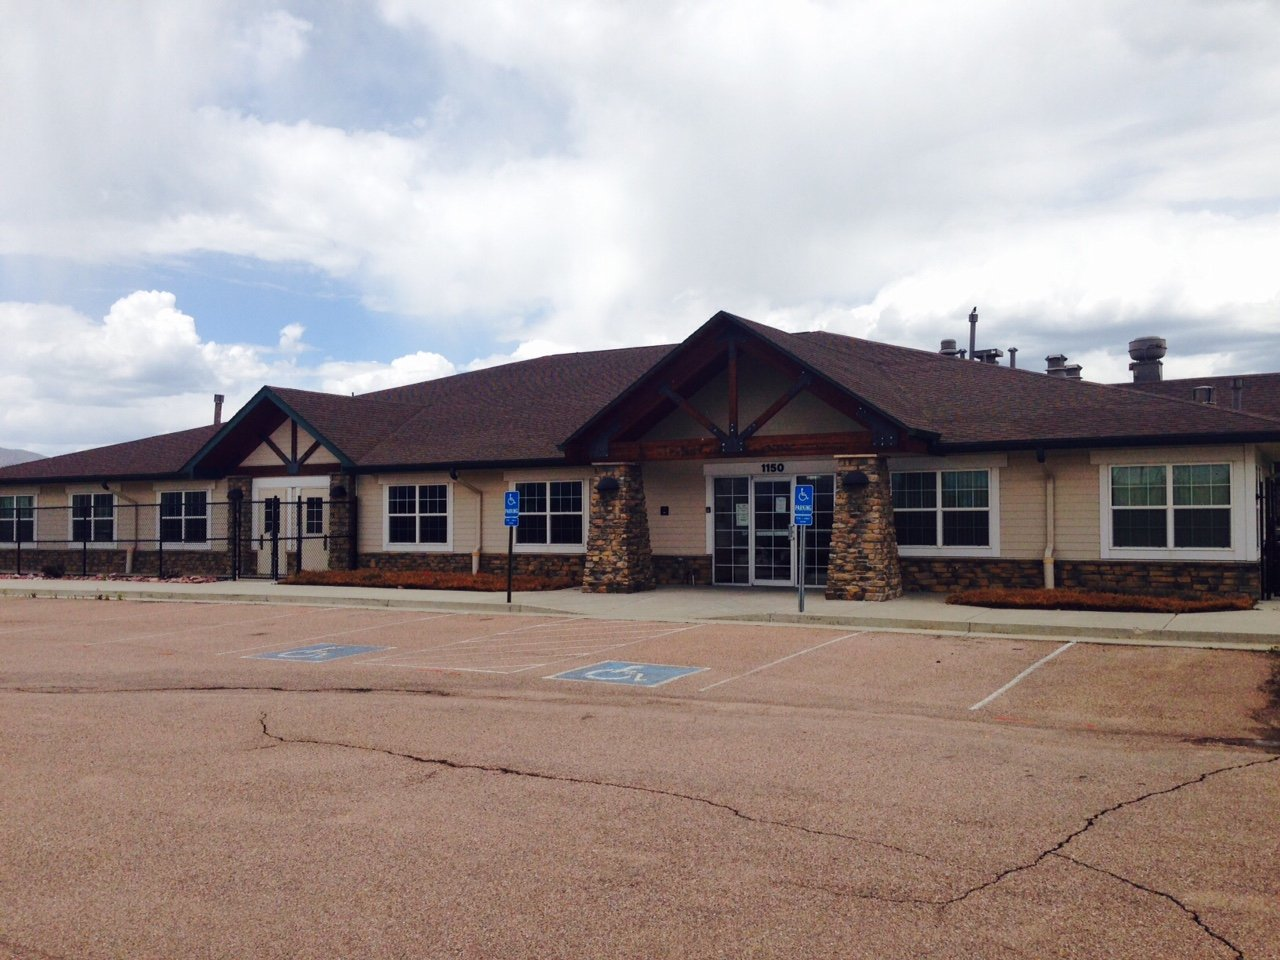 NavPoint Real Estate Group Closes on Retail Building in Colorado Springs for $1,275,000